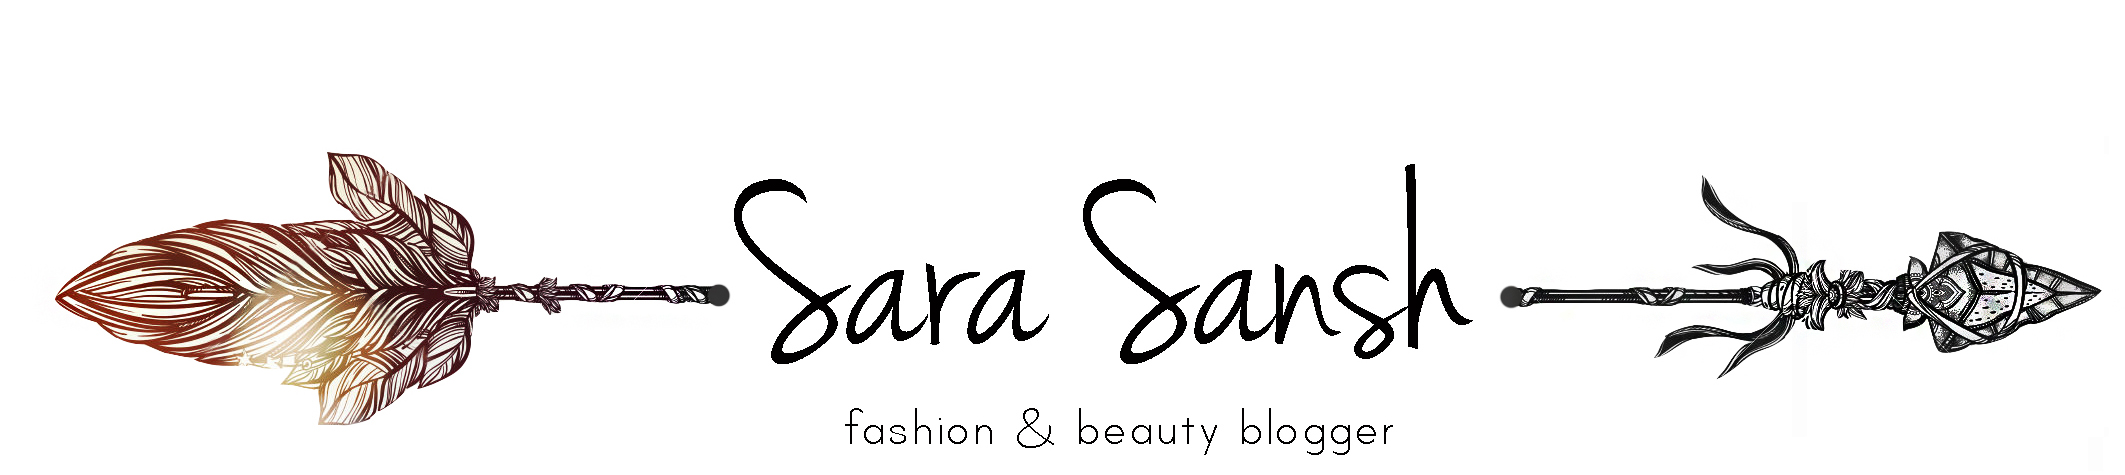 Sara Sans h – Blog mode Lyon & Paris